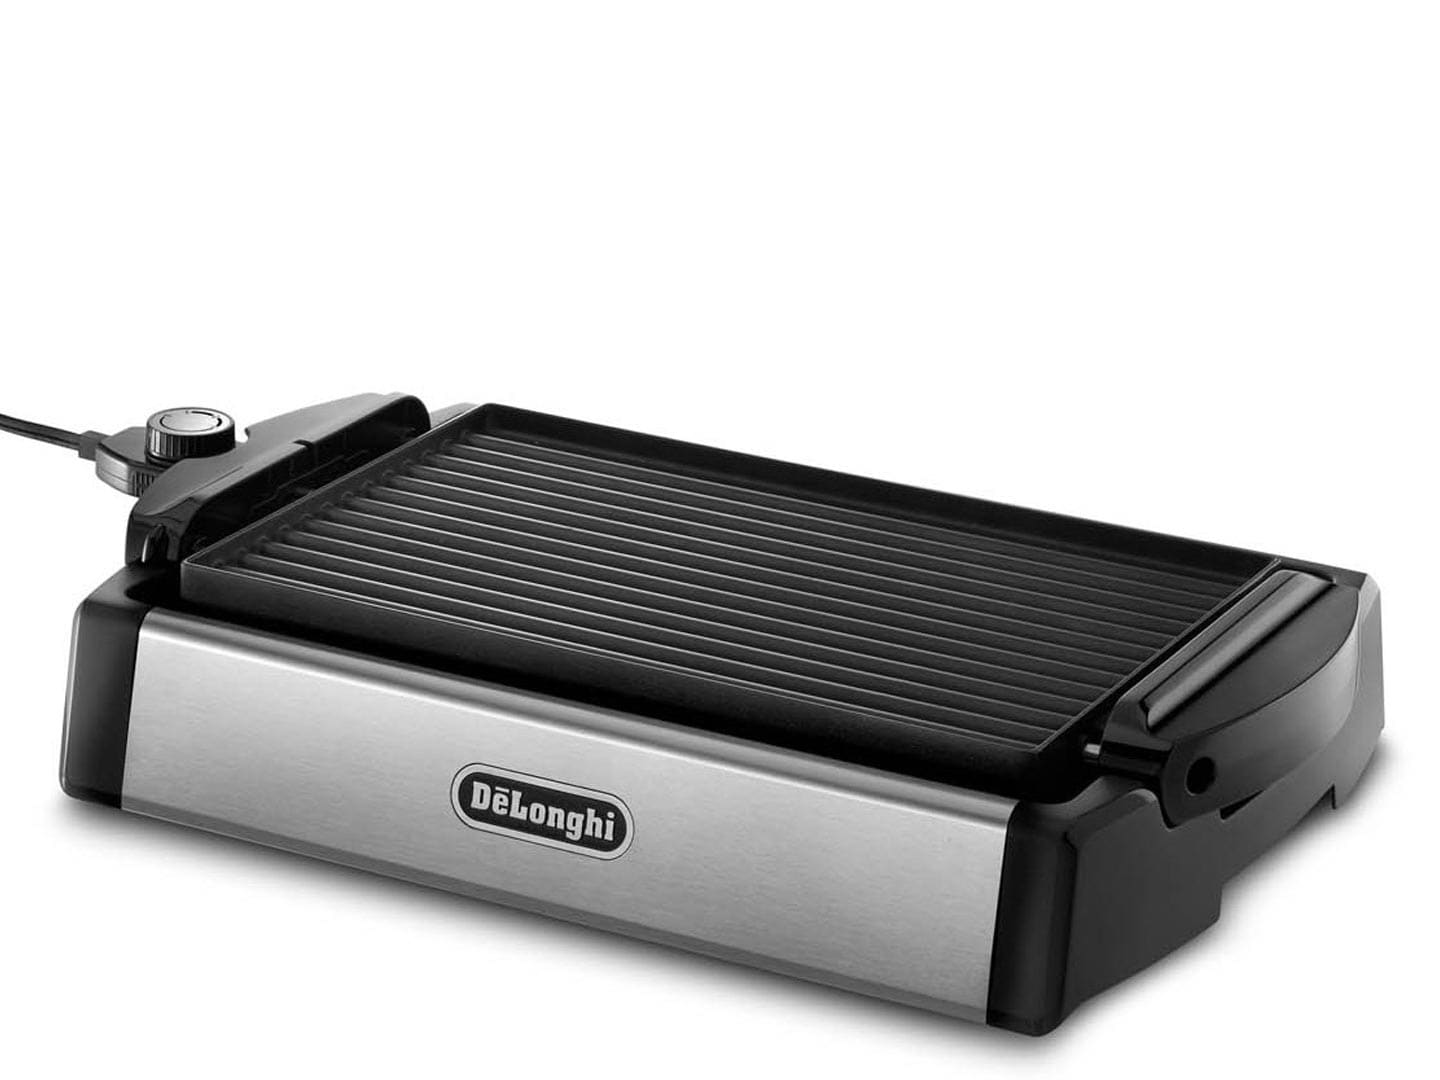 2 In 1 Indoor Grill Amp Griddle With Reversible Plate Bgr50